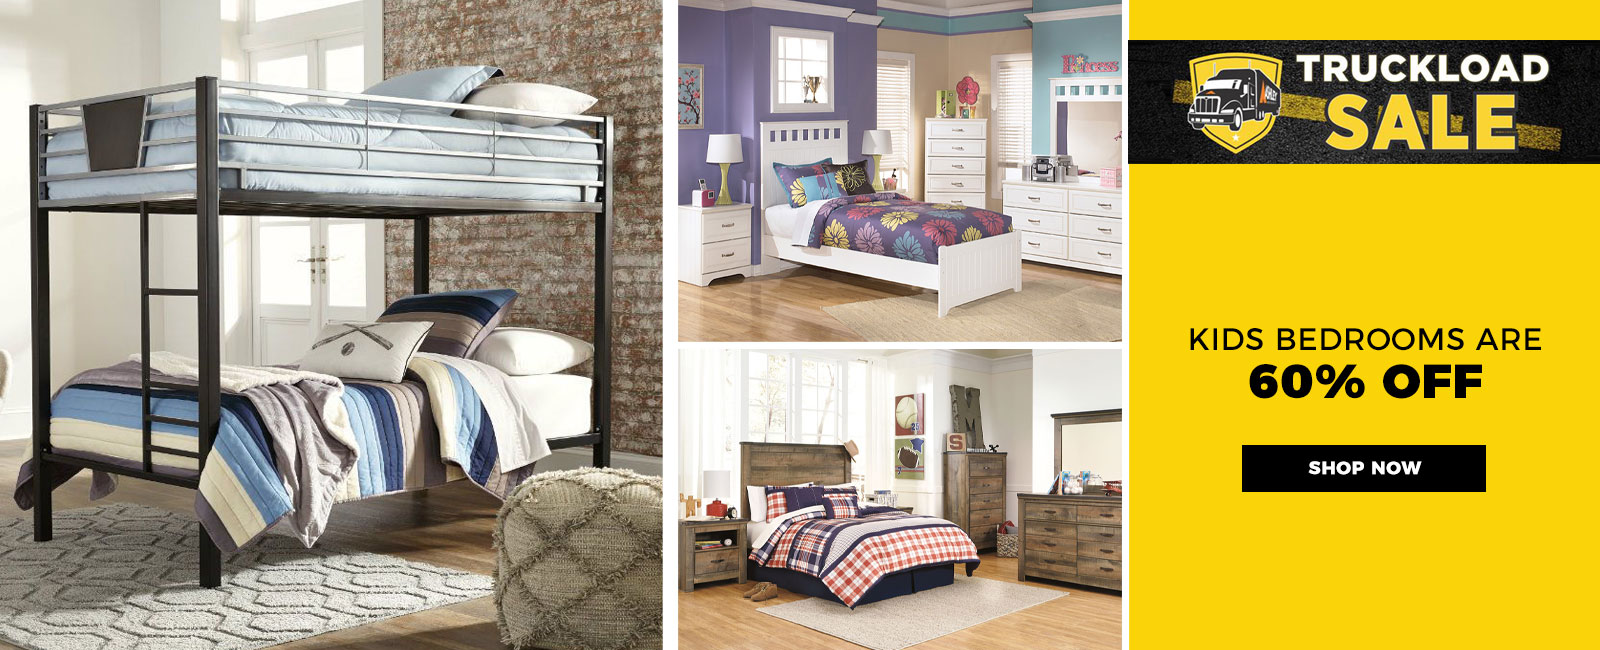 Kids Bedrooms 60% Off - Shop Now